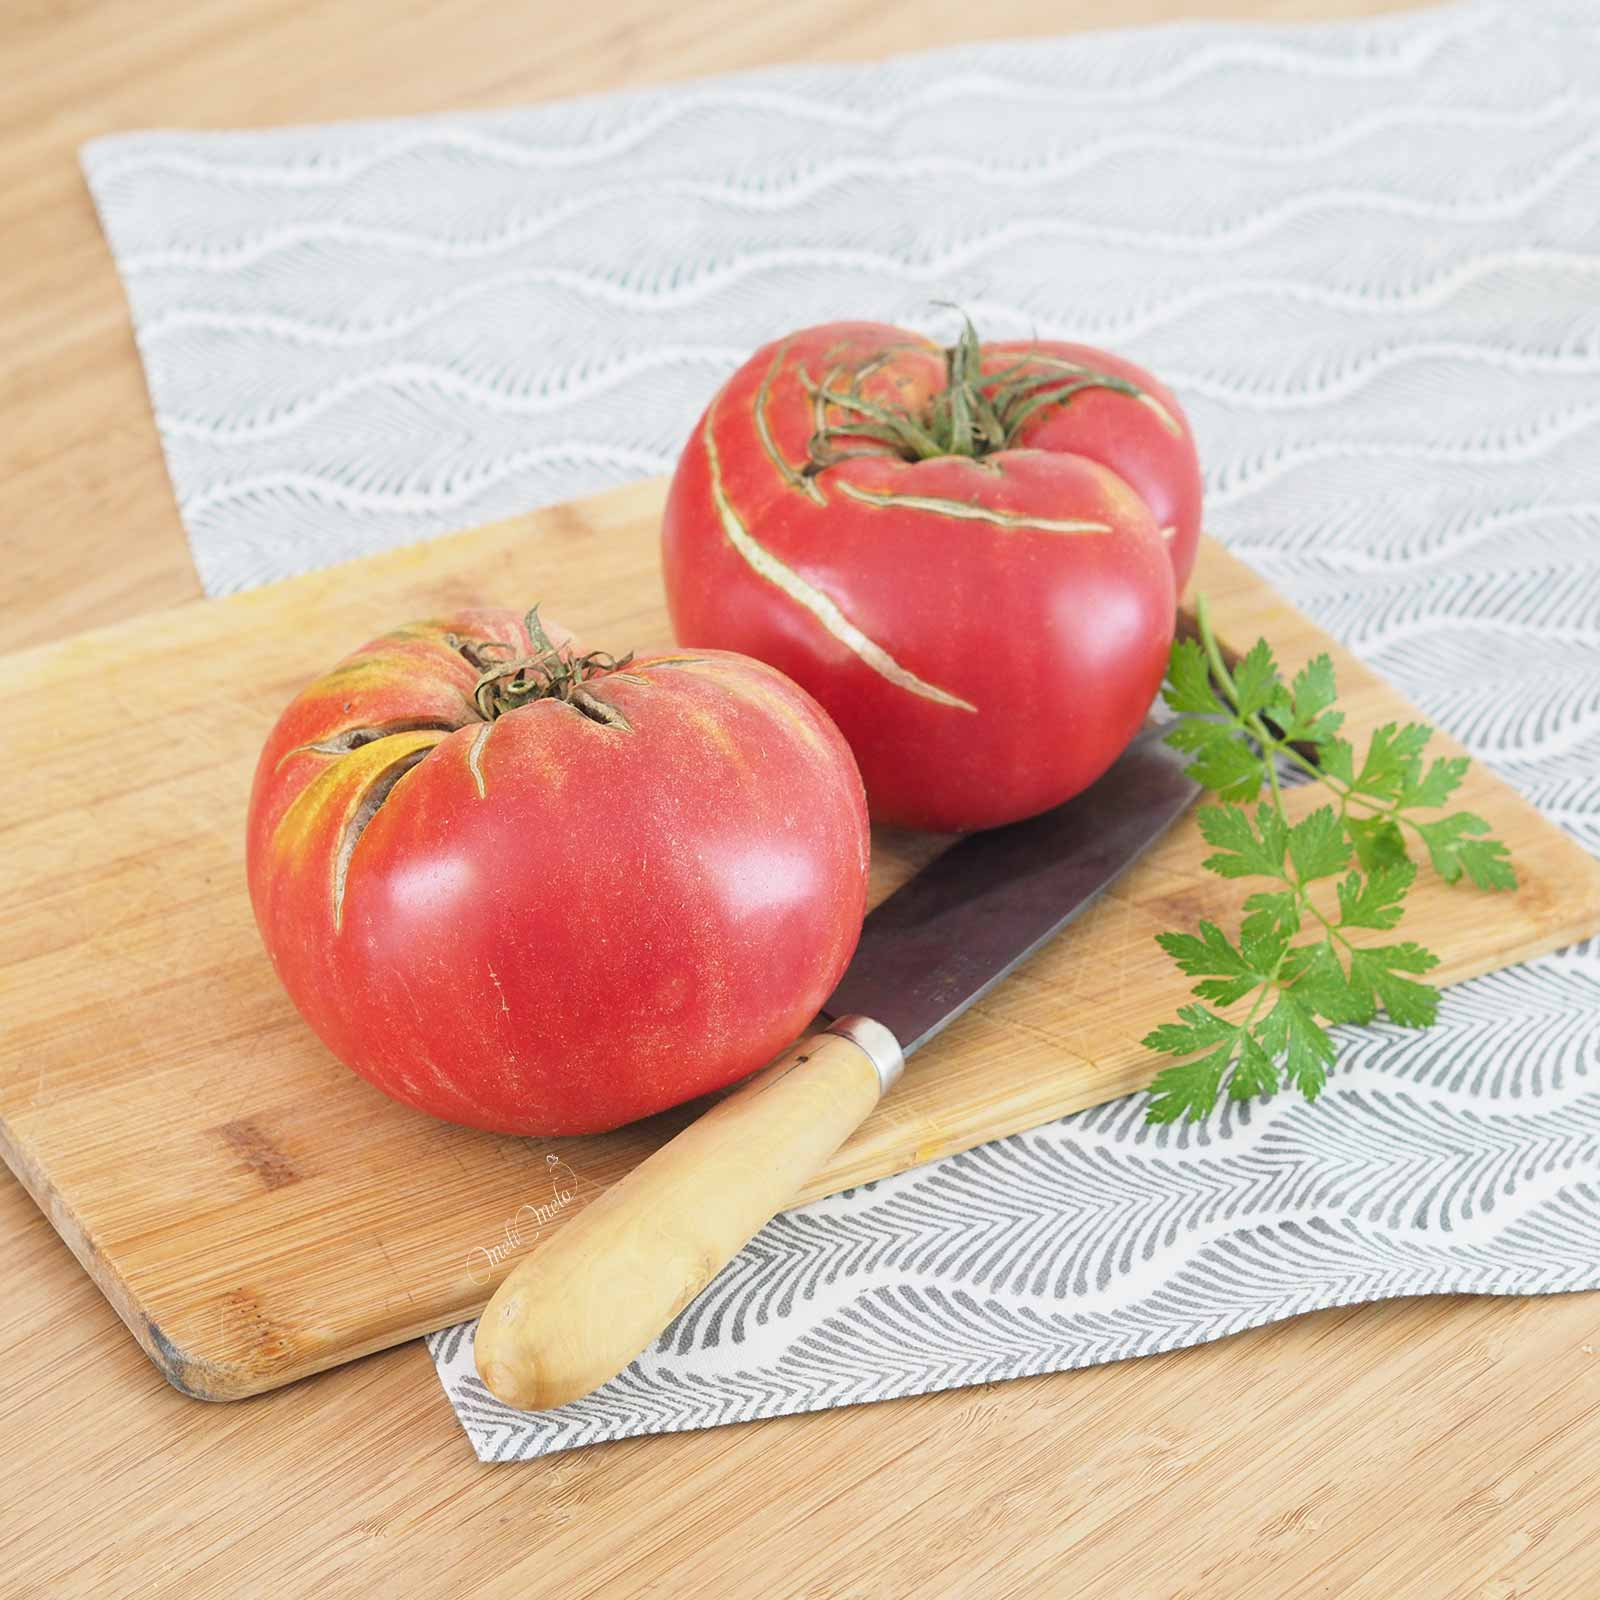 tomate-rosa-huerto-laboutiquedemelimelo